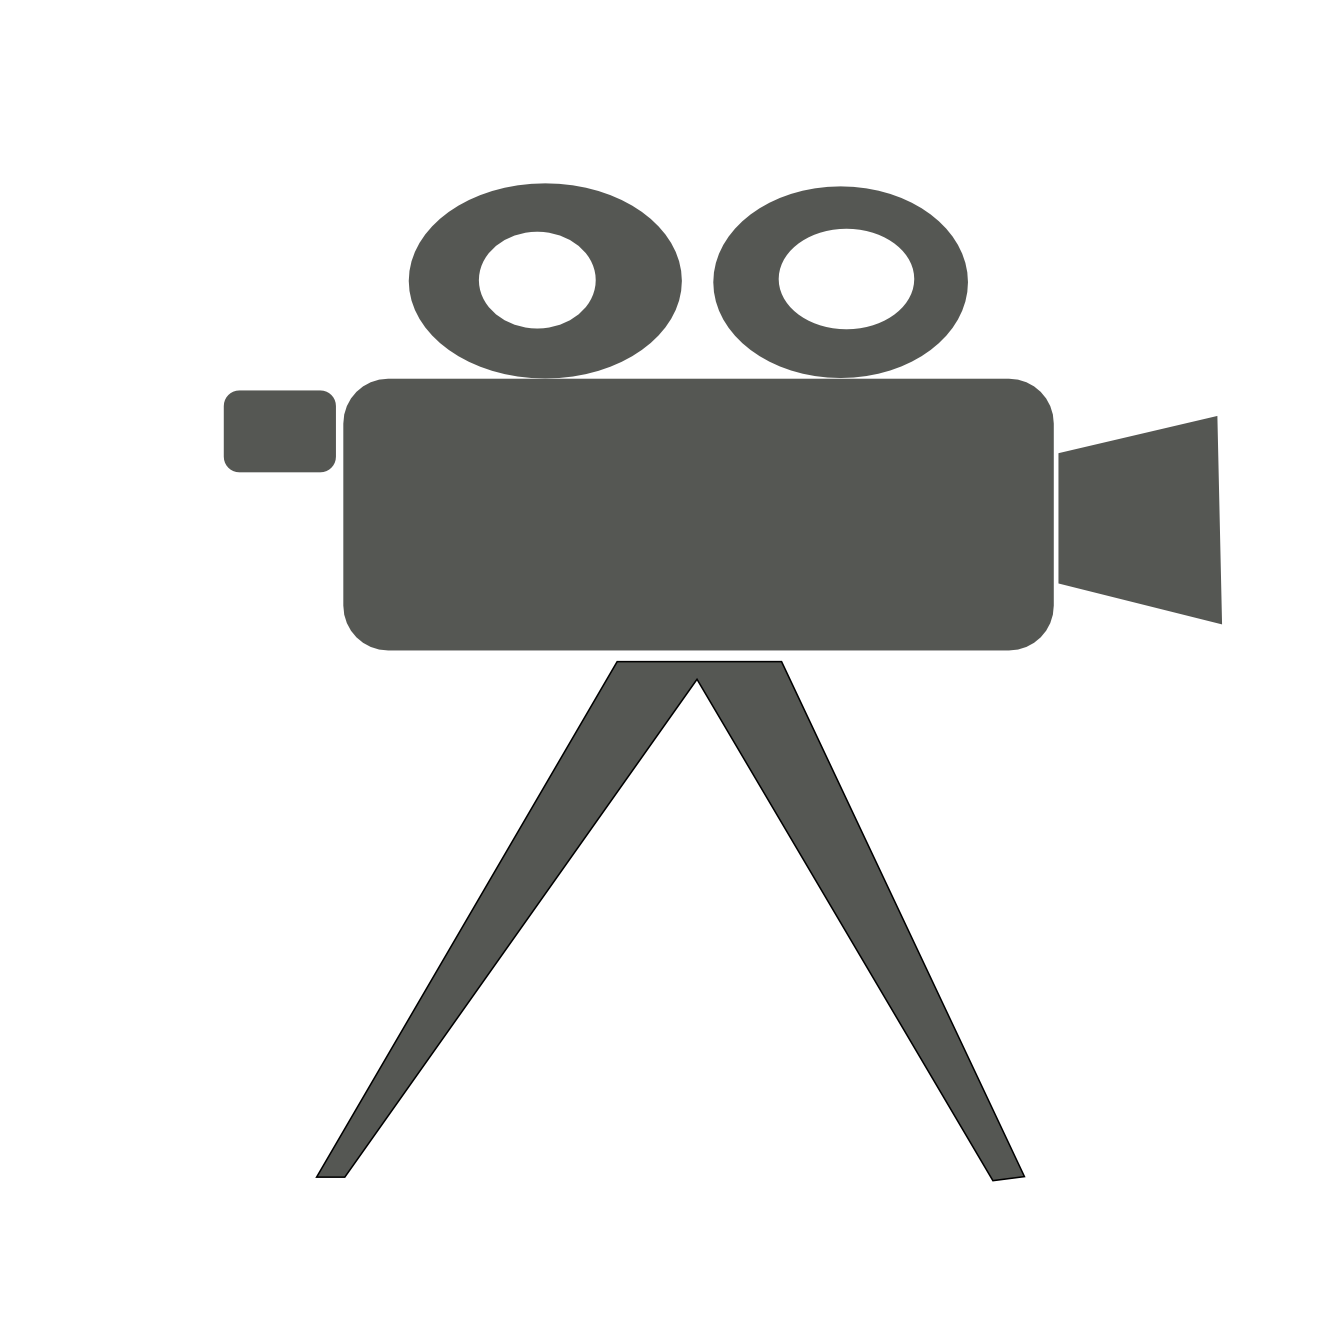 Animated video px png. Photography clipart movie camera